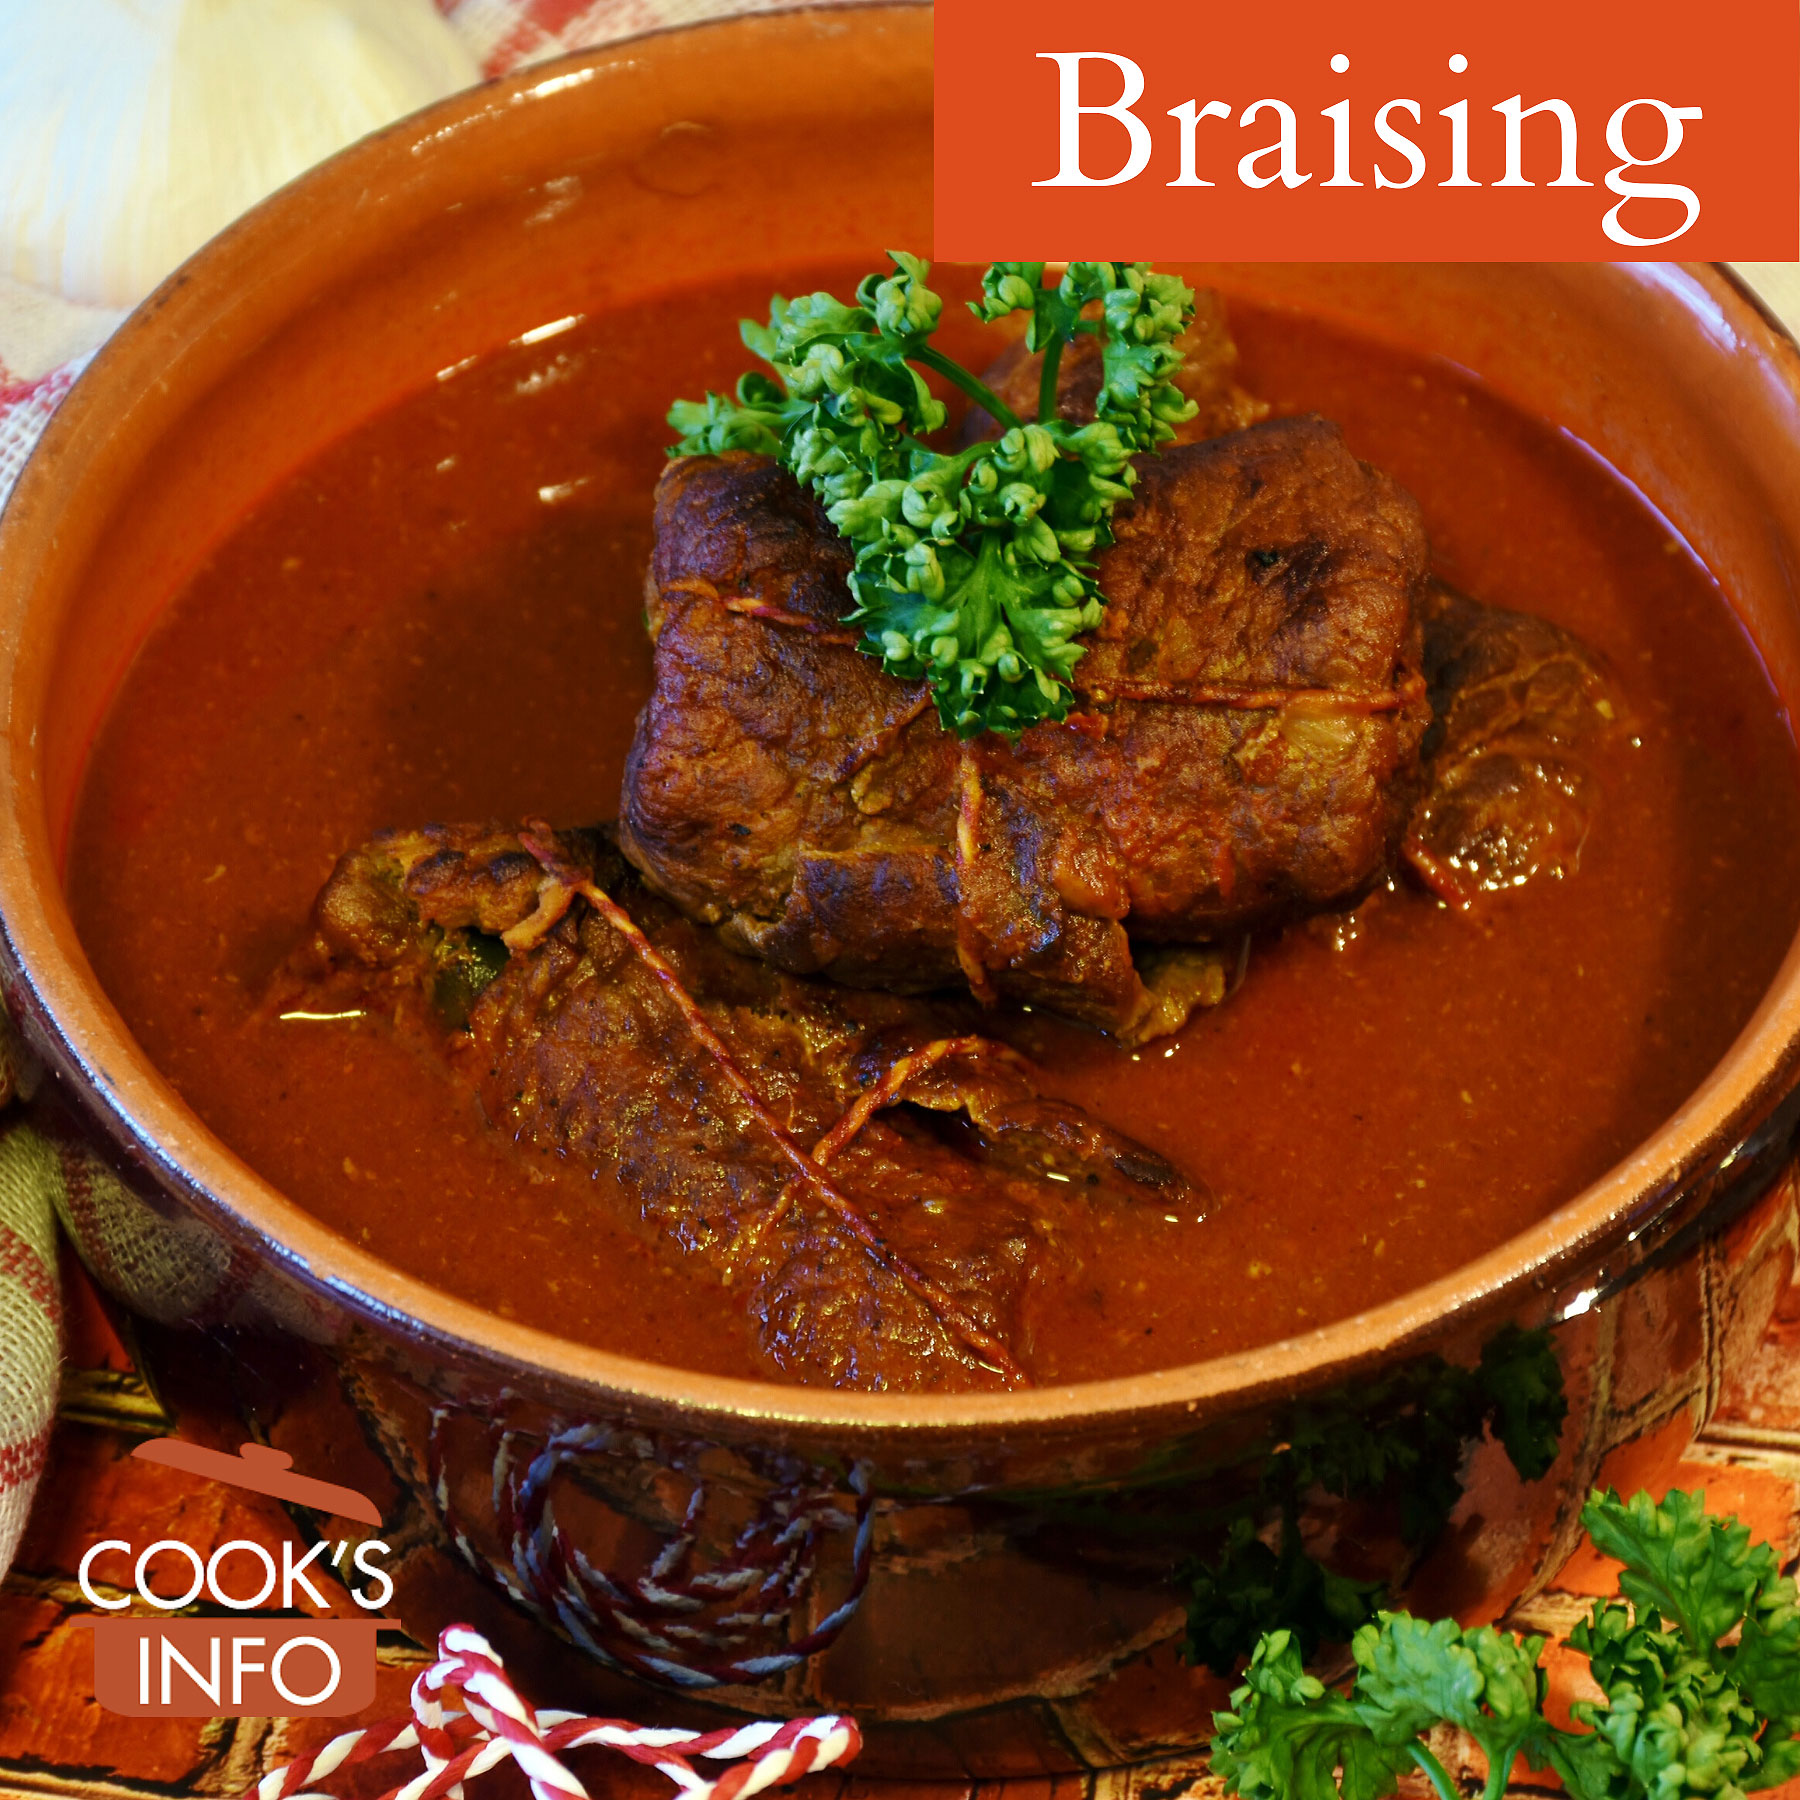 Meat braised in a ceramic pot